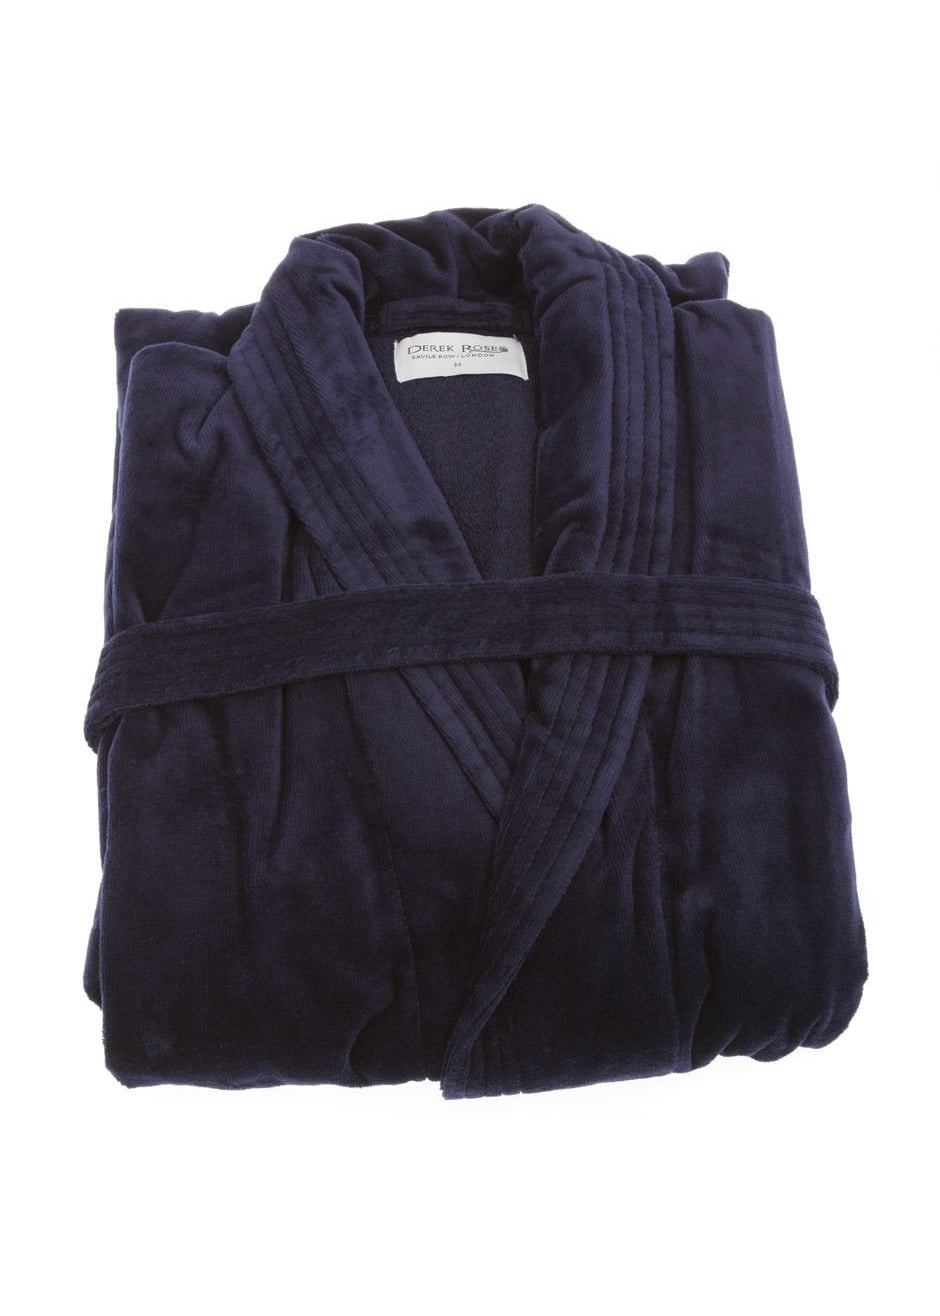 Derek Rose Triton Luxury Towelling Dressing Gown- A Hume